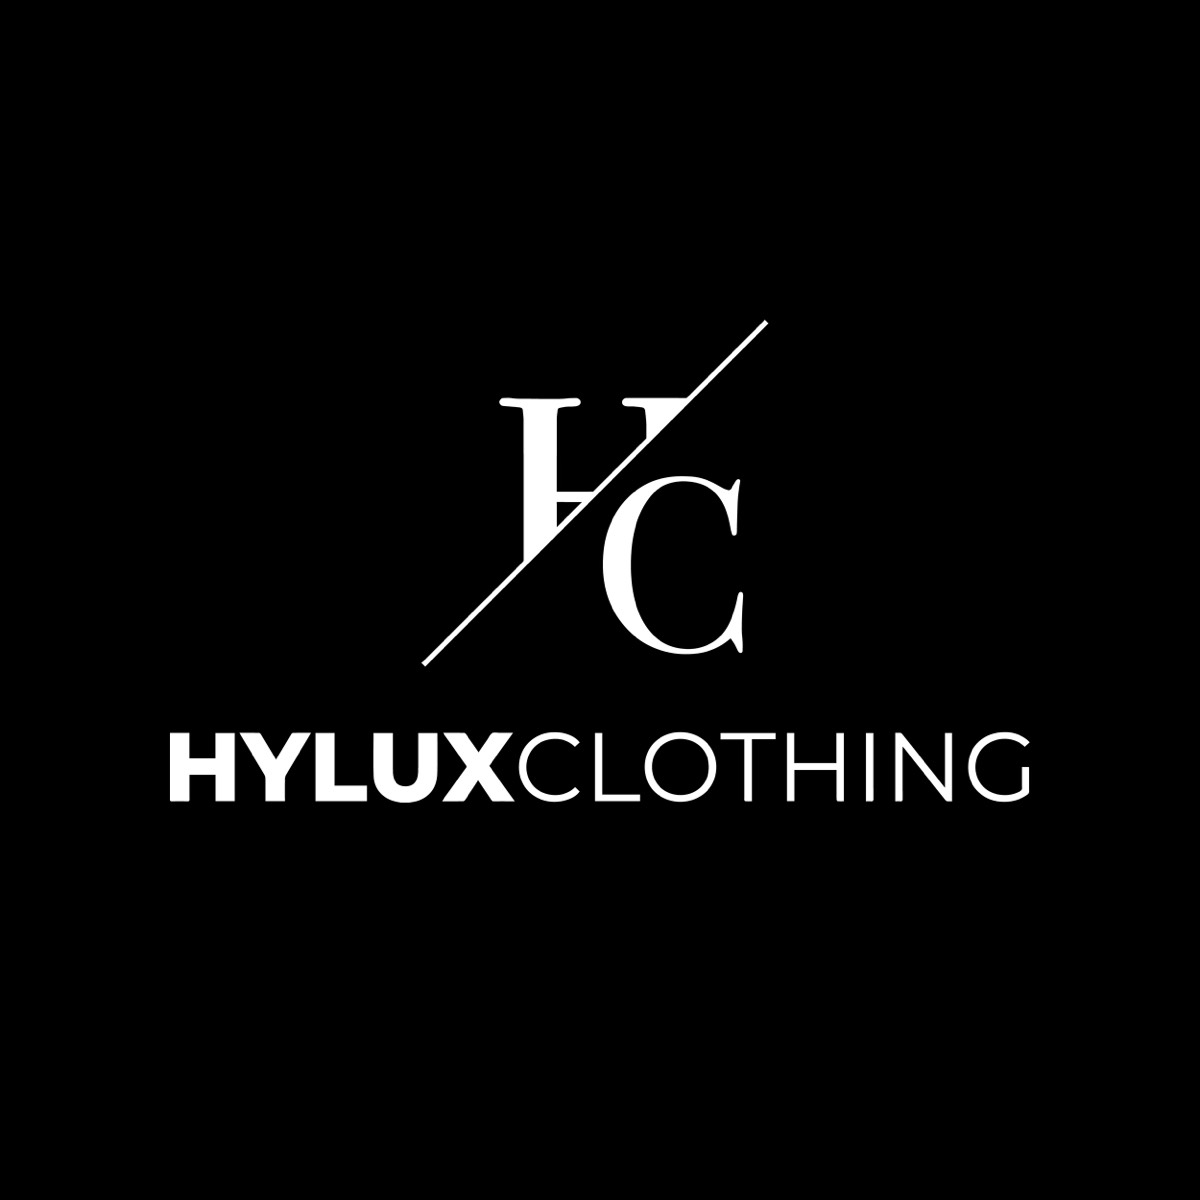 Bump profile picture for @hyluxclothing